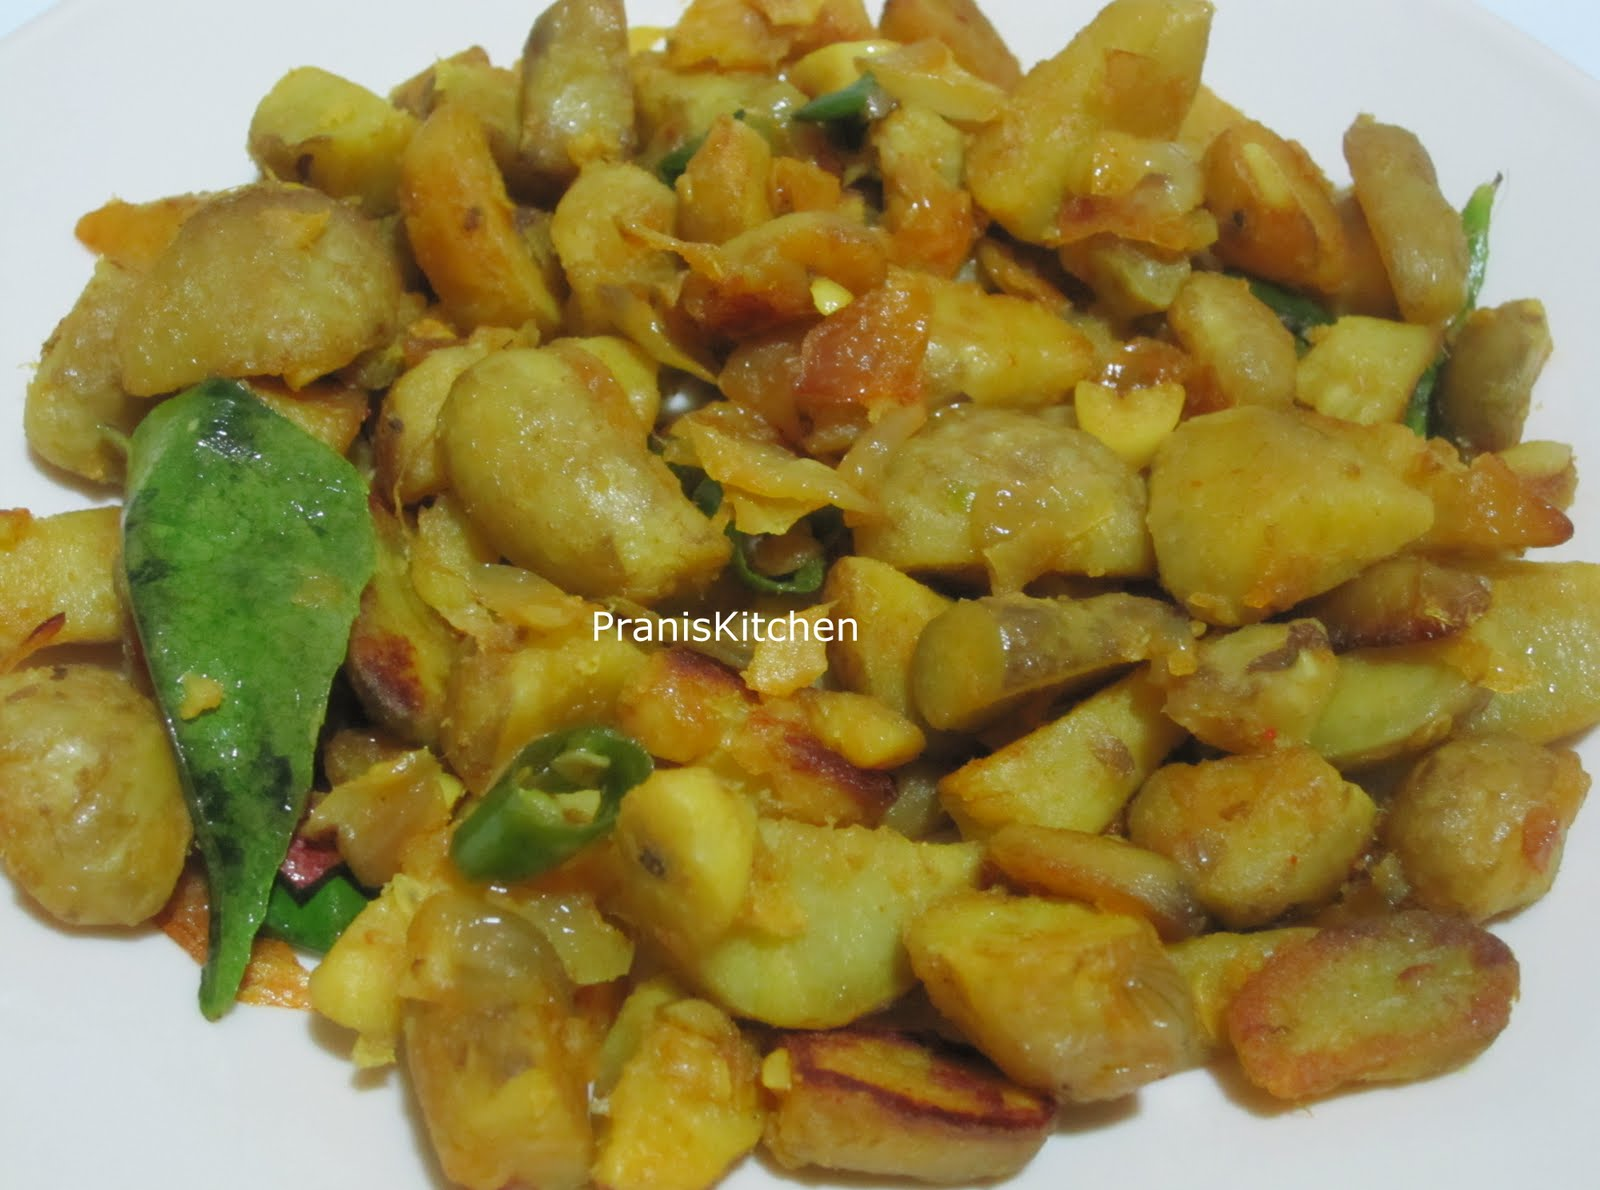 Praniskitchen recipes for food lovers try it you ll love it koorka mezhukkupirattichinese potato stir fry and award forumfinder Images